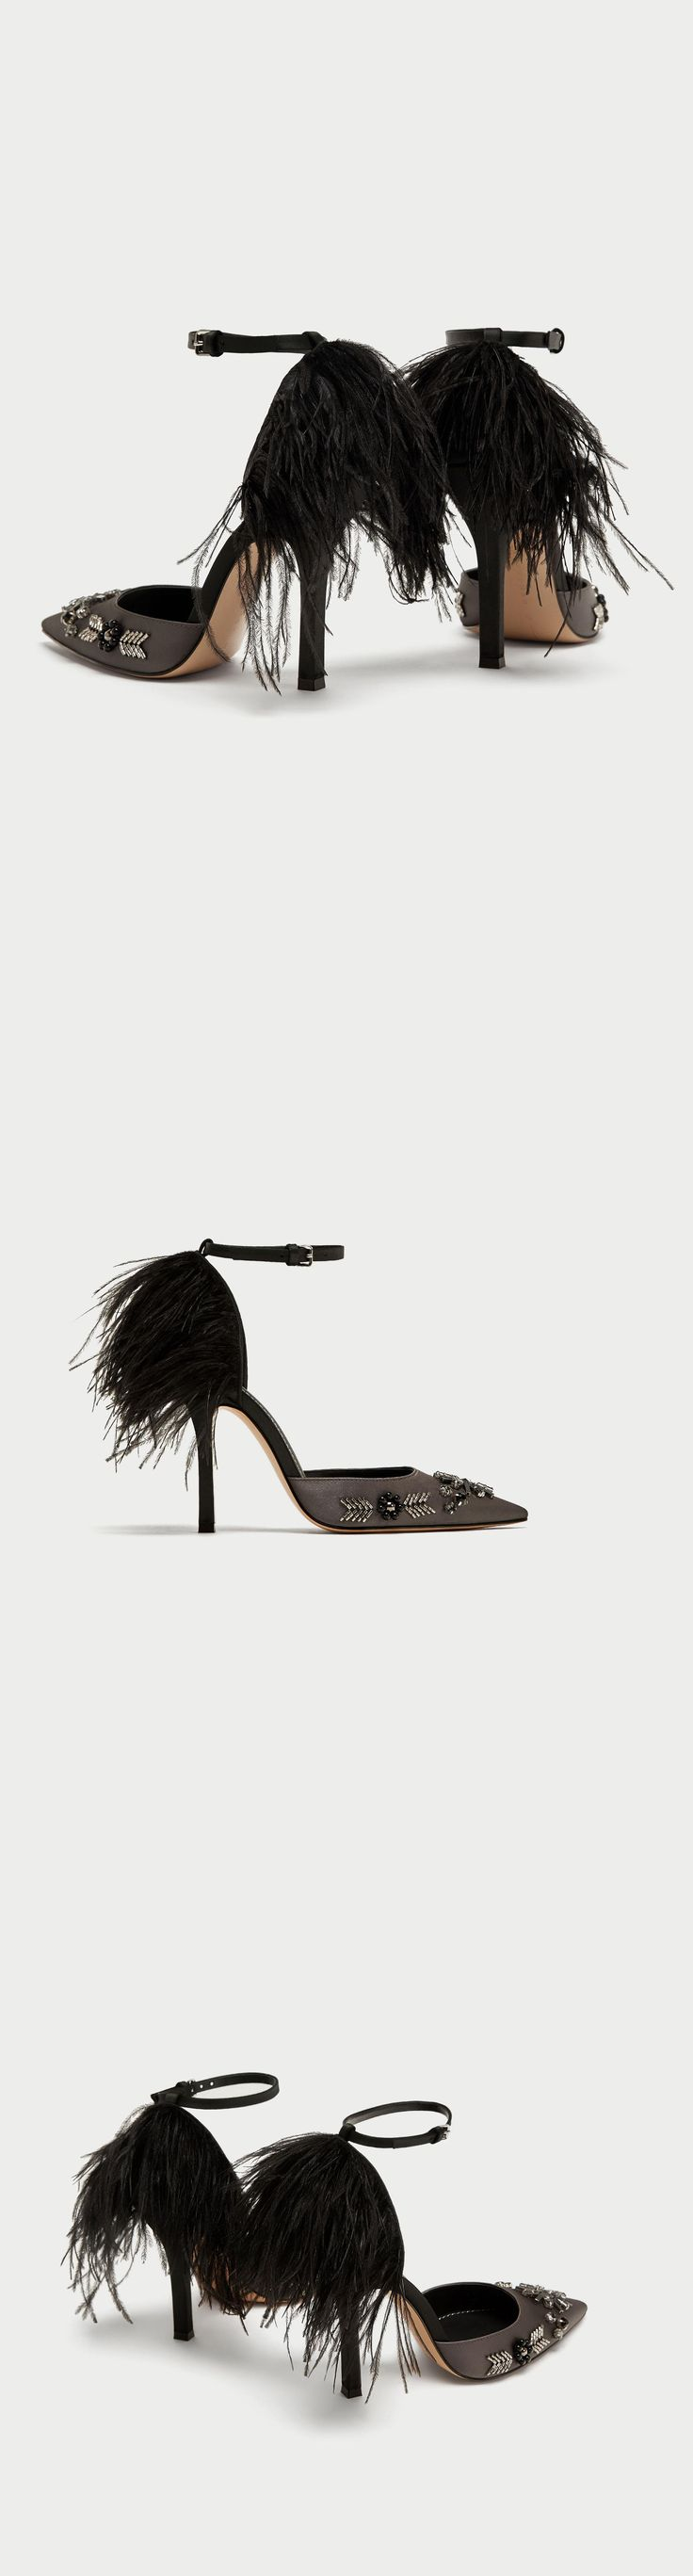 Court Shoes With Embroidered Feathers // 139.00 USD // Zara // Lead grey high heel court shoes with feathers detail on the heel, beads on the front, satin upper and pointed toes. Heel height of 10 cm. / 3.9″